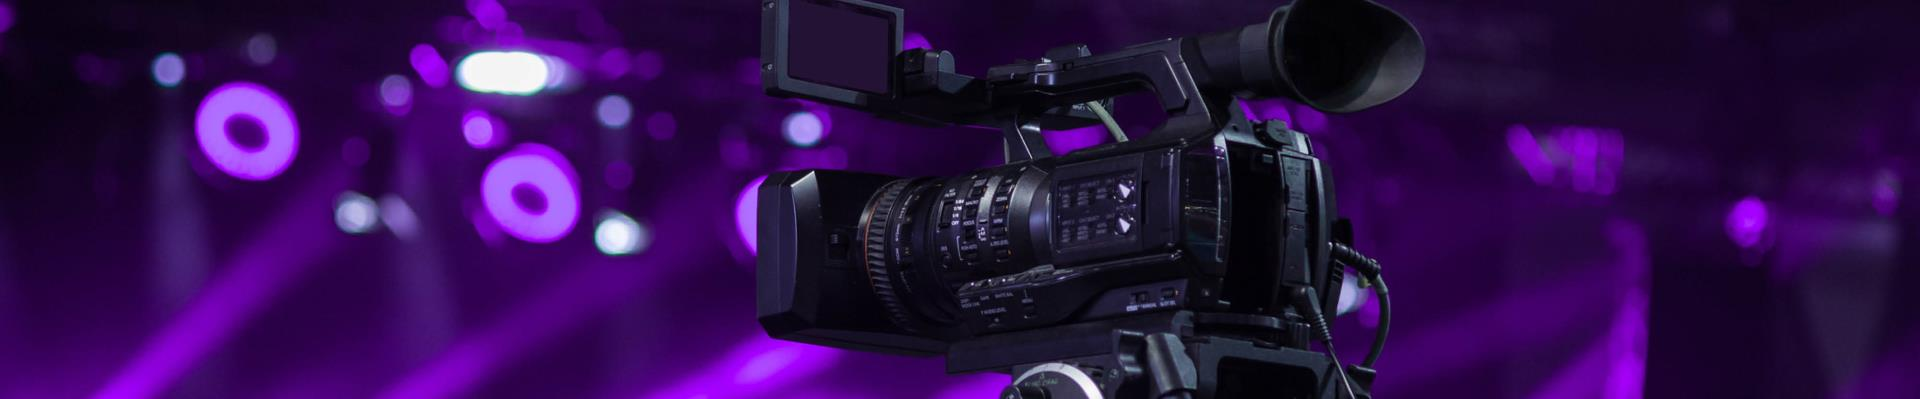 viedo camera recording purple background